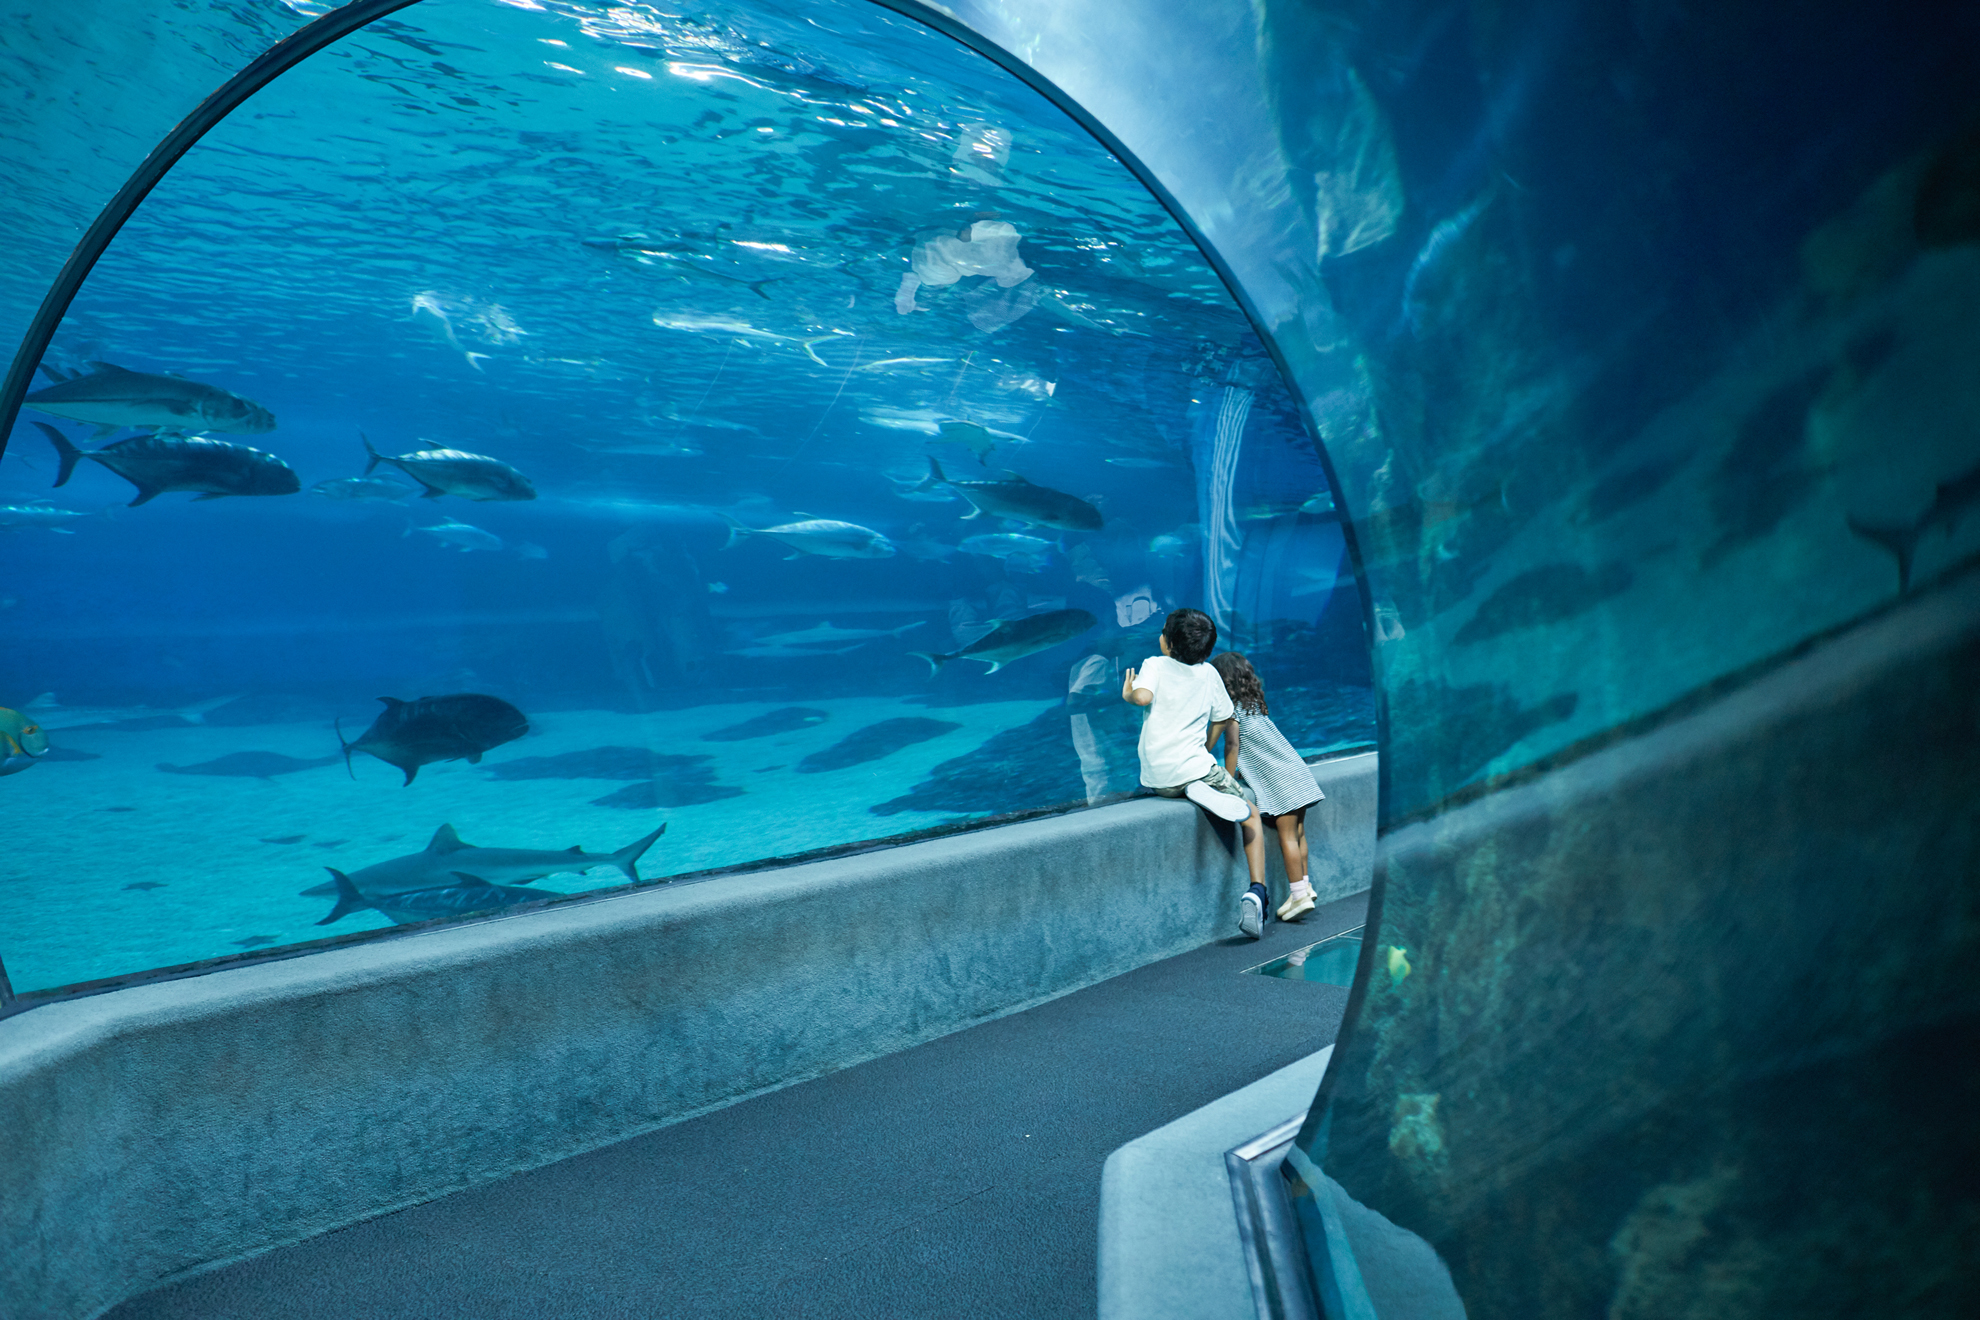 Two young kids look at fish through the glass tunnel wall at Maui Ocean Center.